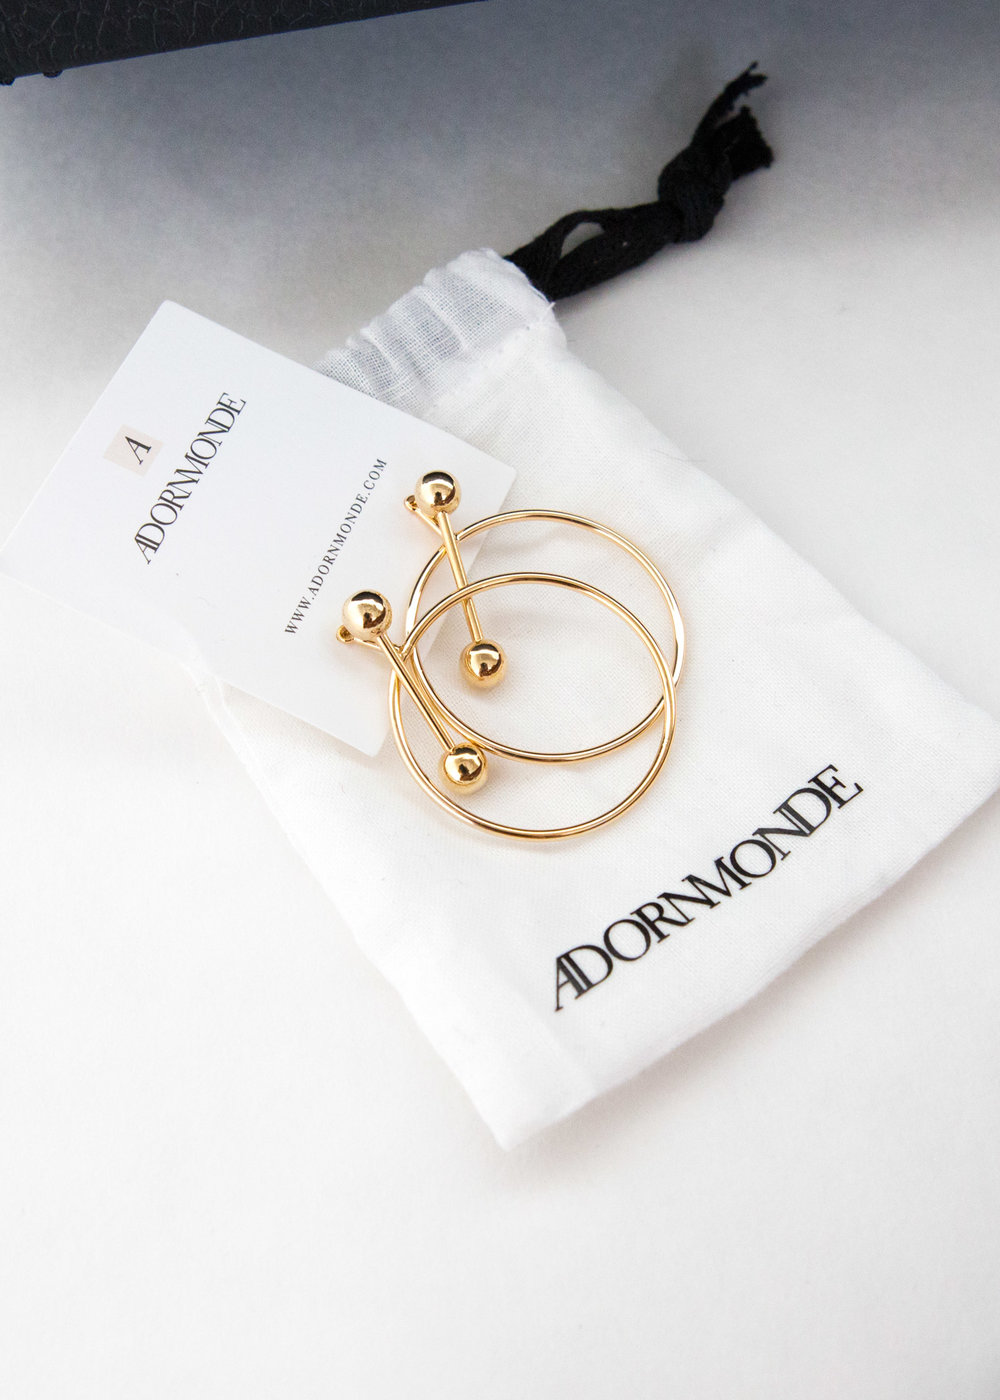 Gold AdornMonde earrings from the  BOS